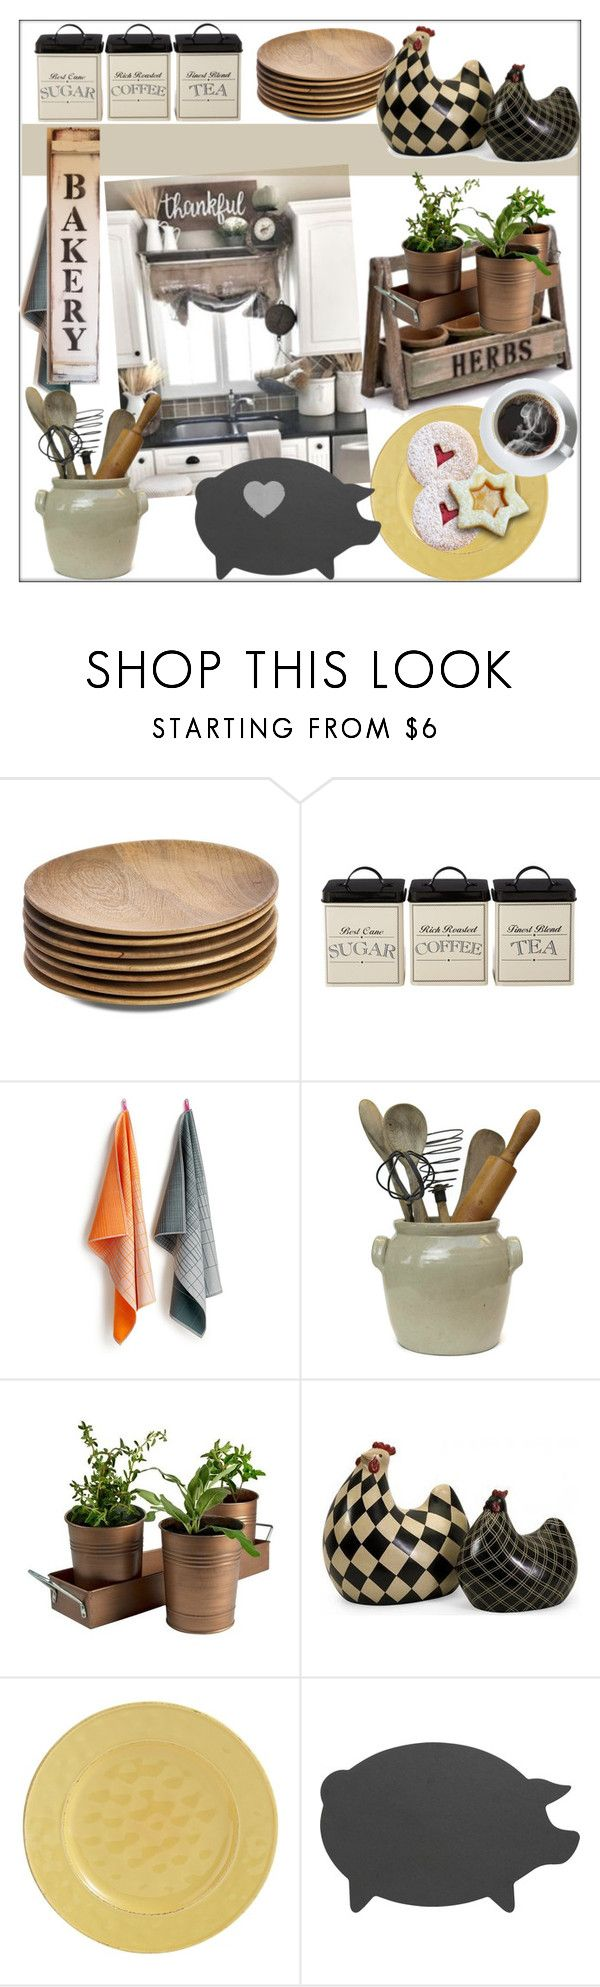 """""""Cottage Bakery"""" by pat912 ❤ liked on Polyvore featuring NKUKU, HAY, Artland, Home Decorators Collection, Pier 1 Imports, Crate and Barrel, kitchen, Home, bakery and polyvoreeditorial"""